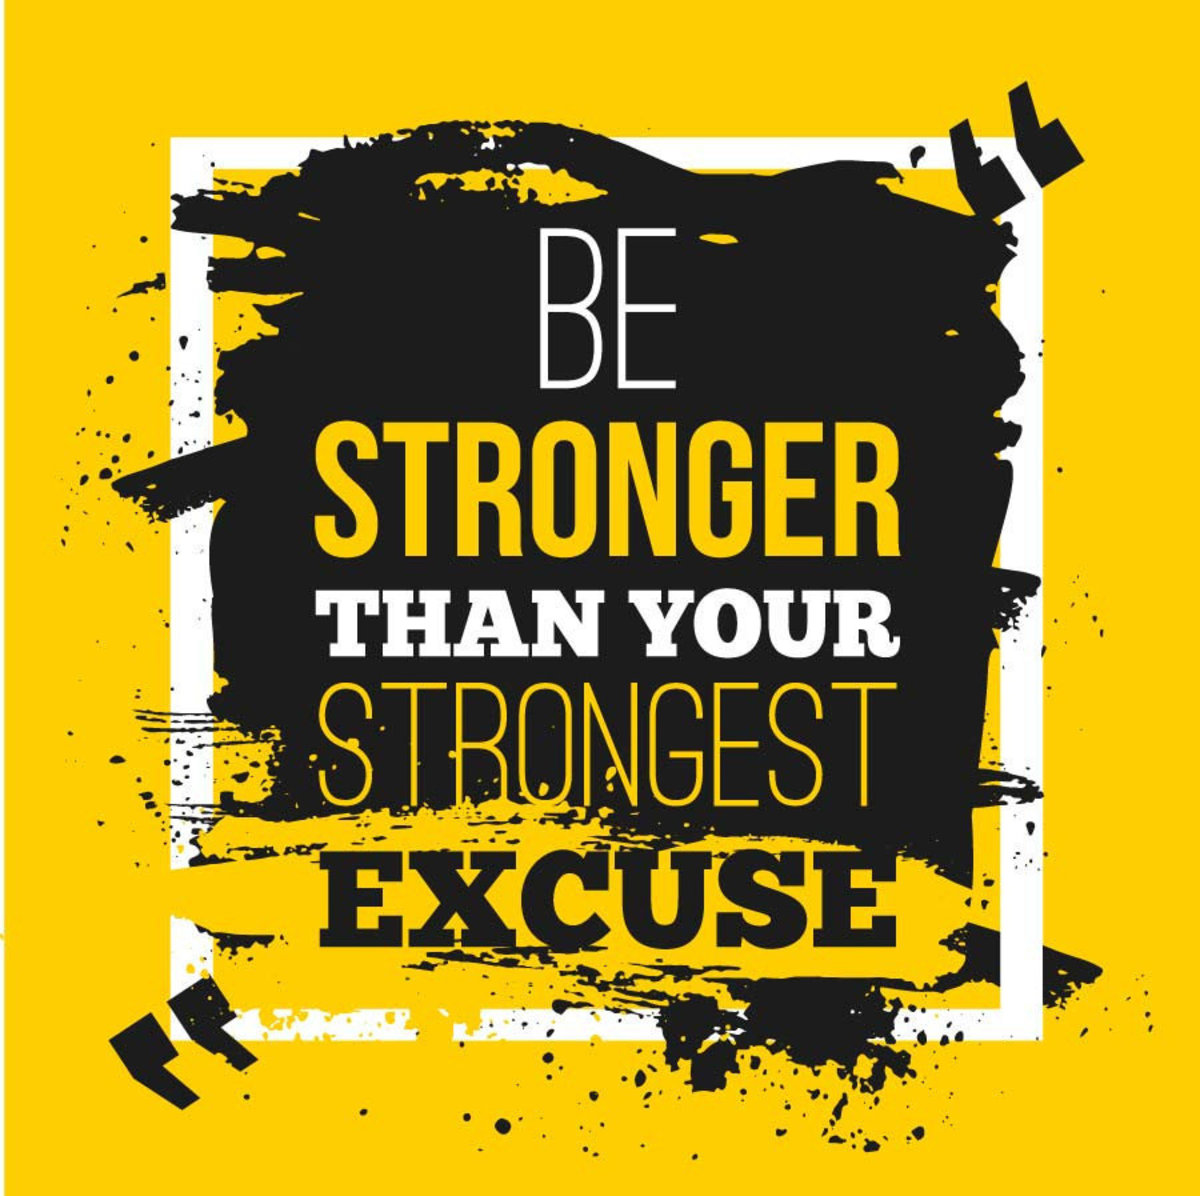 Be stronger than your strongest excuse motivational quote on black and yellow background Additional Thumbnail